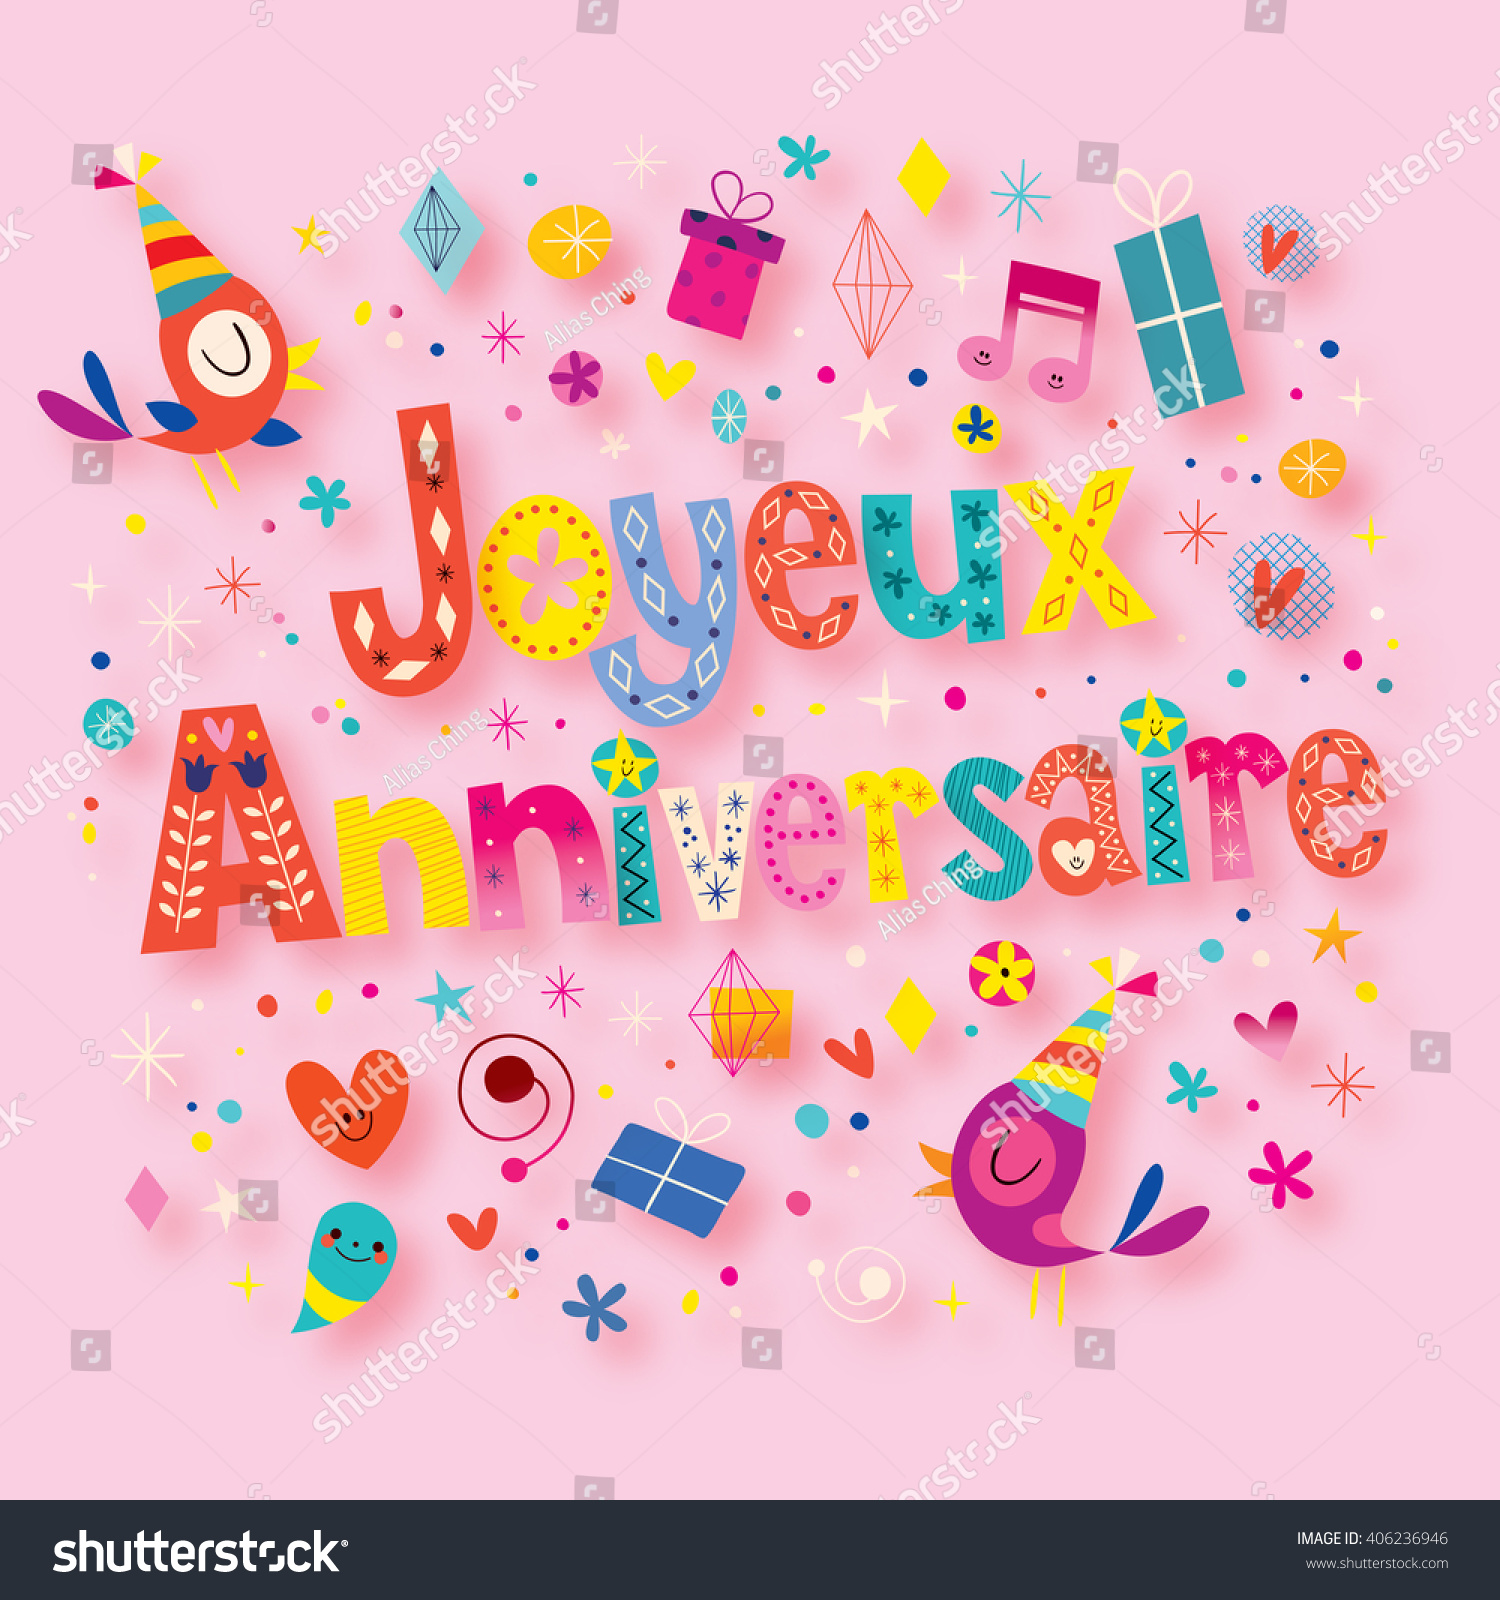 anniversaire in french